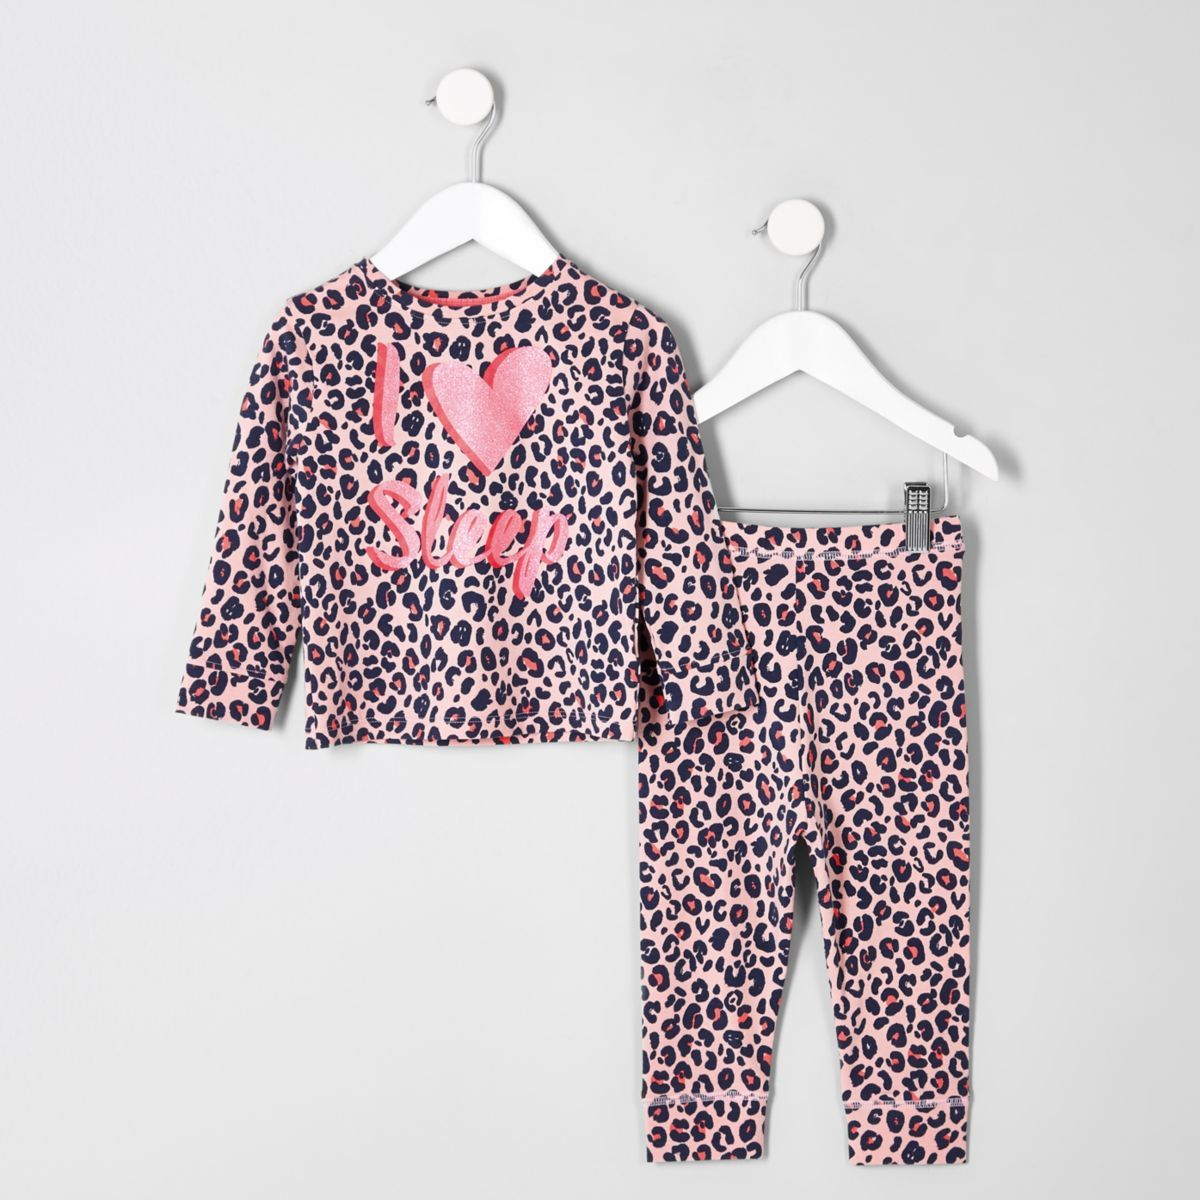 Mini Girls Pink Leopard Print Pyjama Set Toddler Outfits Baby